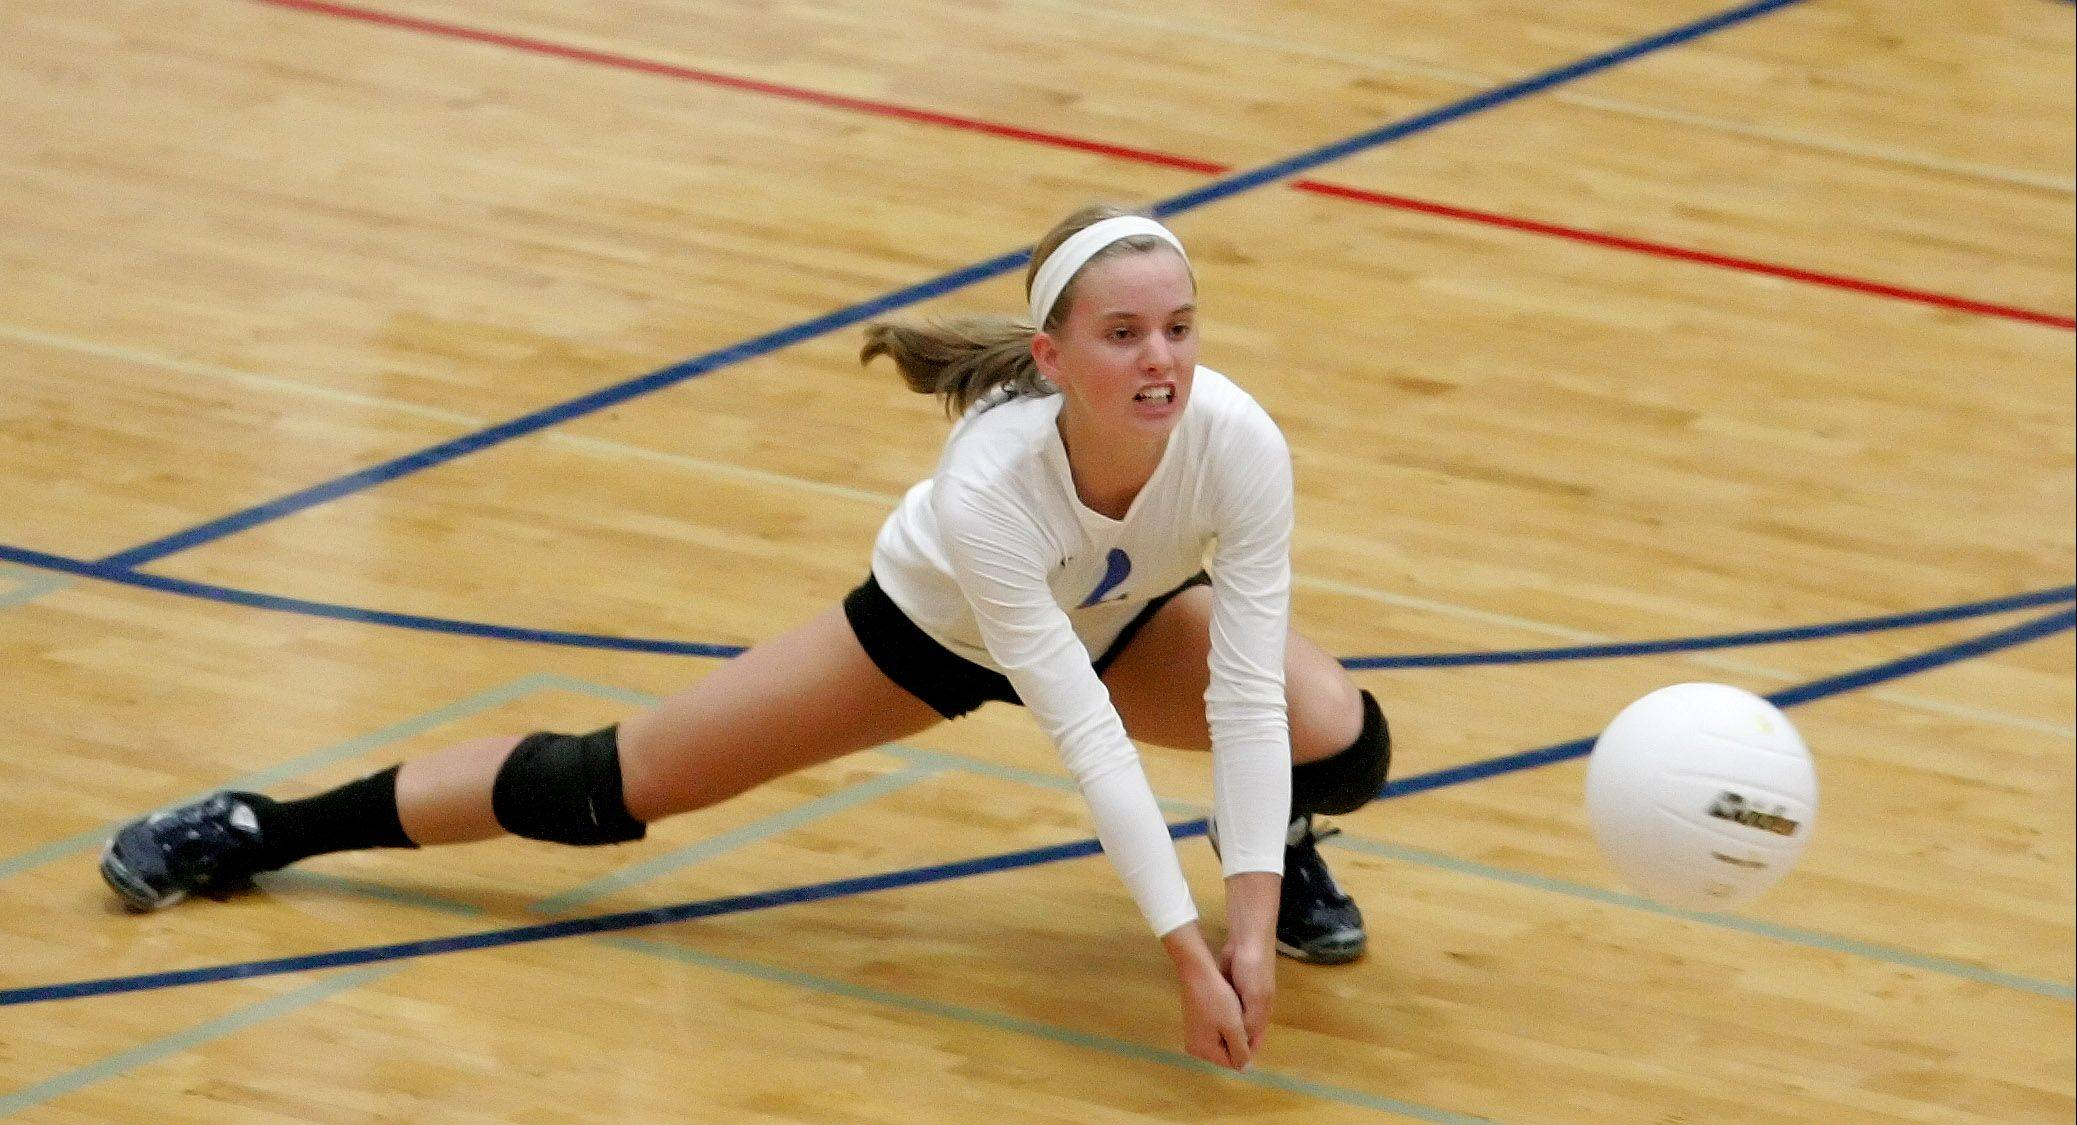 Kelly Dalheim of Geneva dives for a ball in action against West Aurora during girls volleyball in Aurora on Monday.